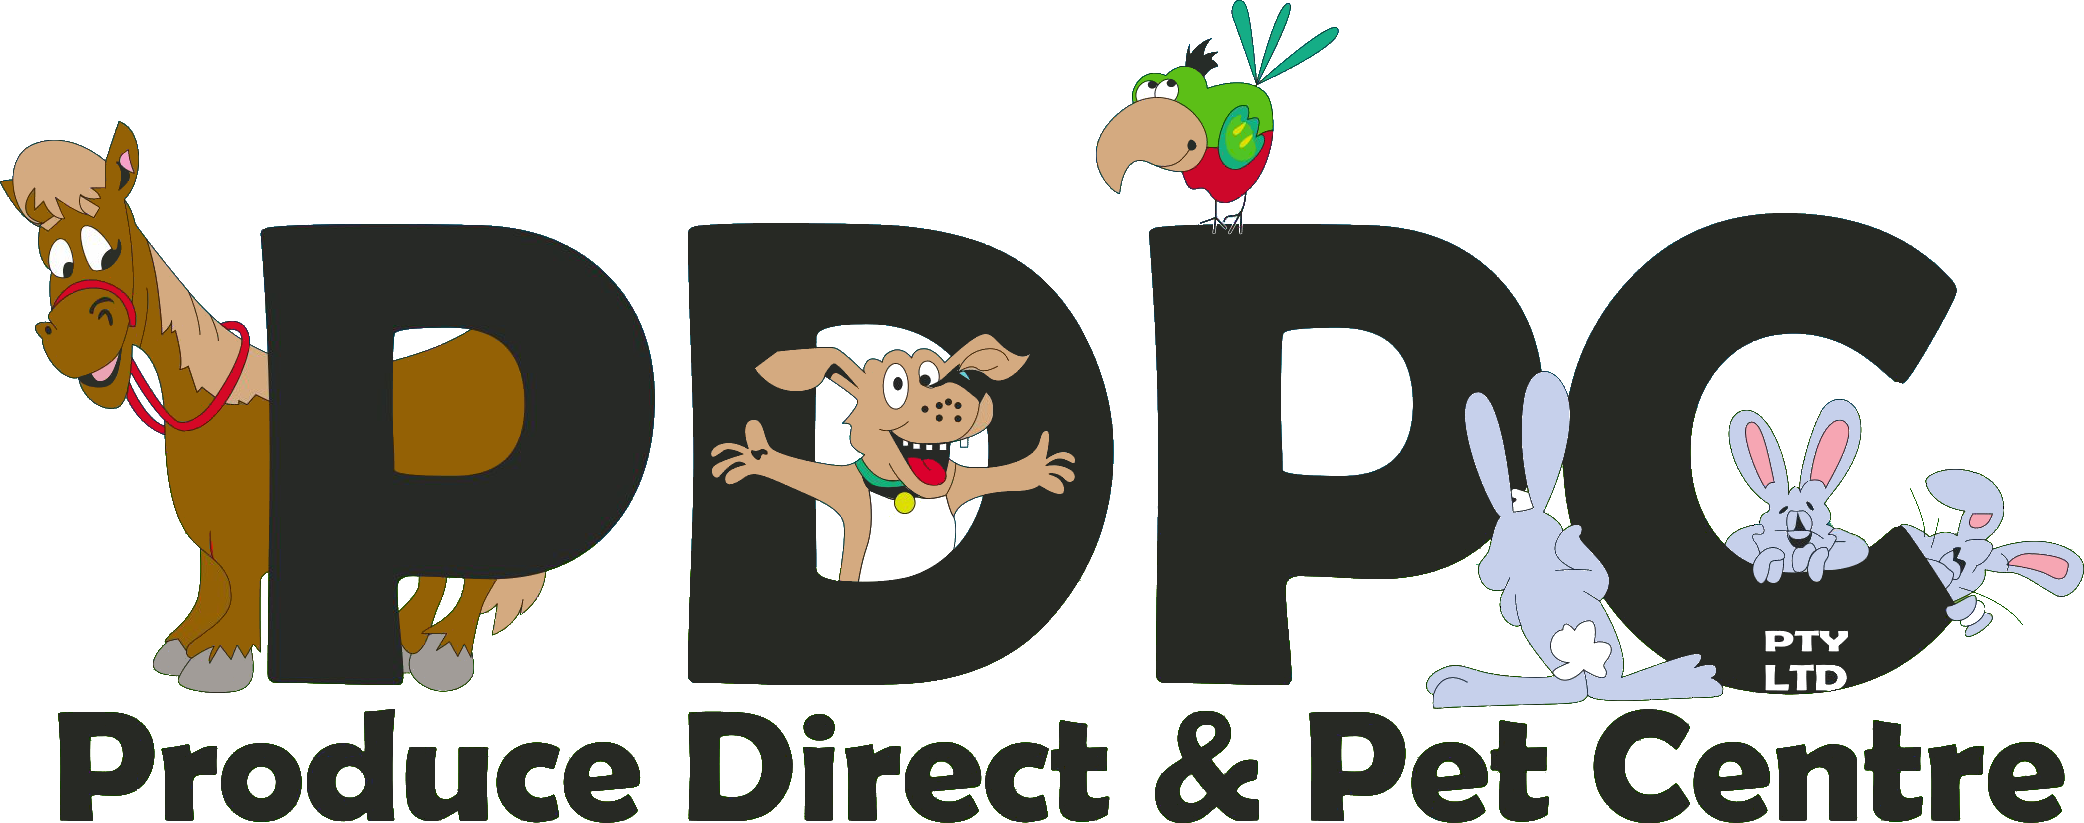 Produce Direct Pet Centre